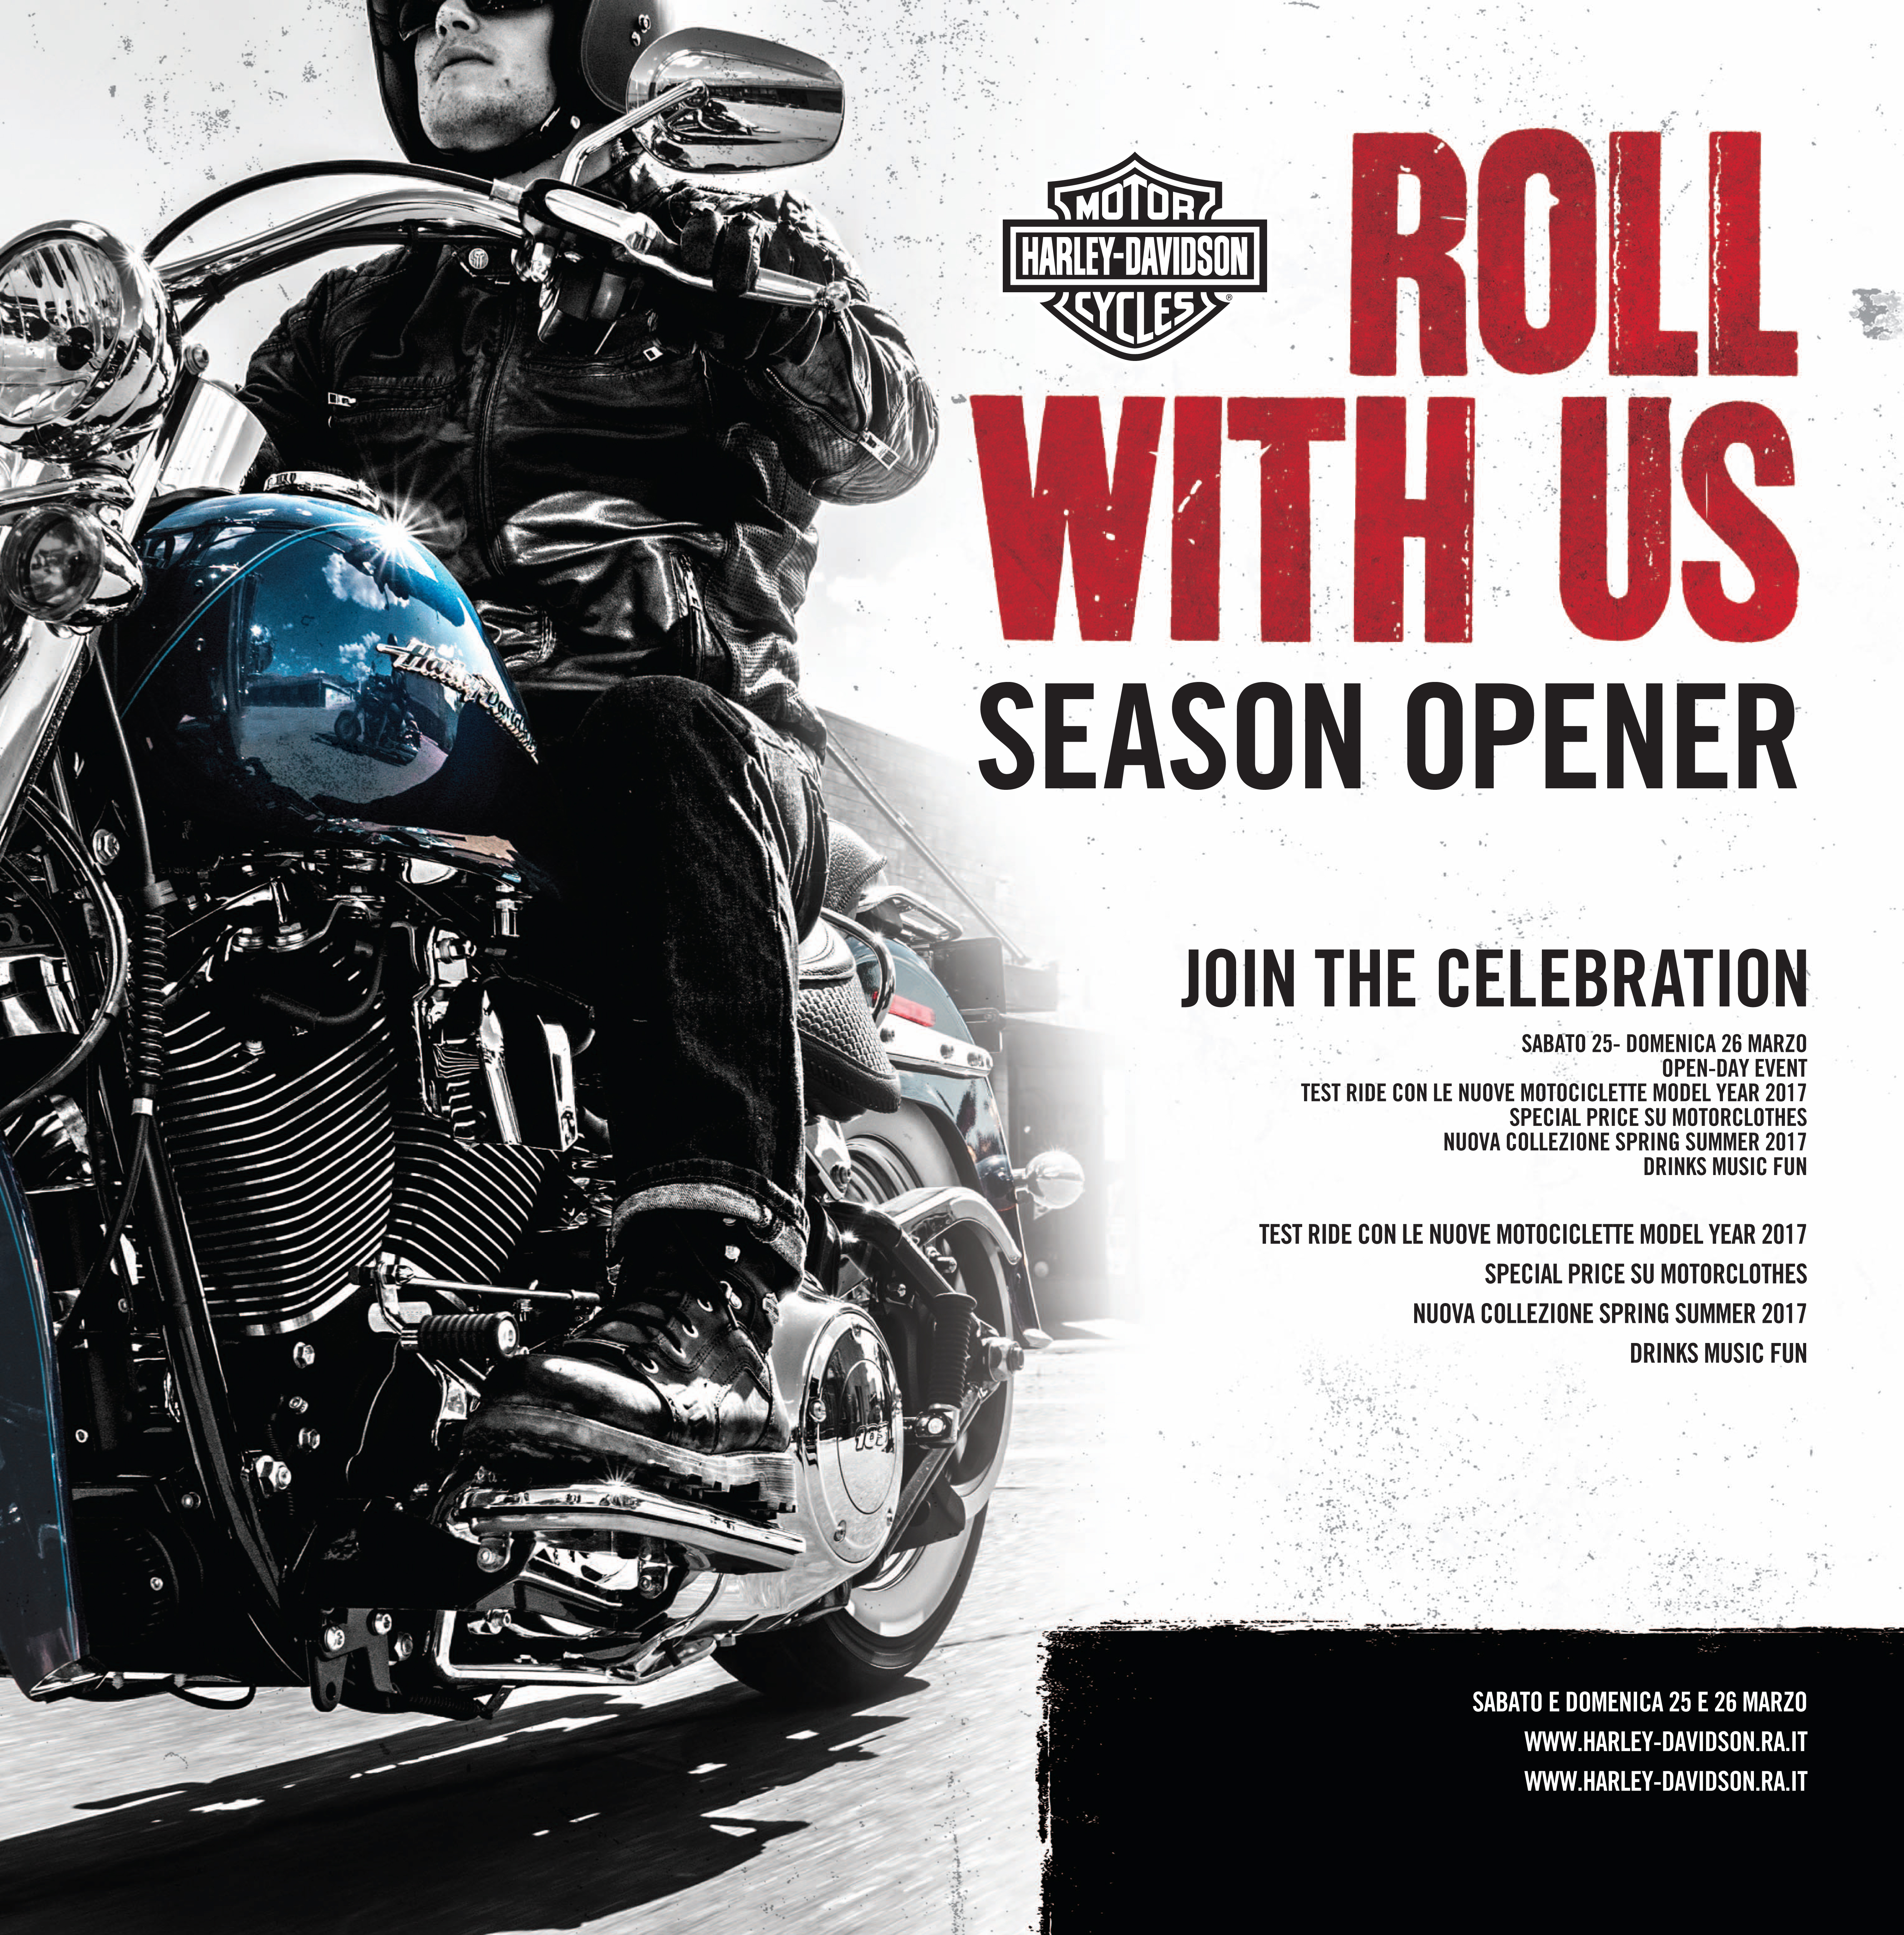 harley-davidson ravenna blog FREE TEST RIDE ALL THE DAY!